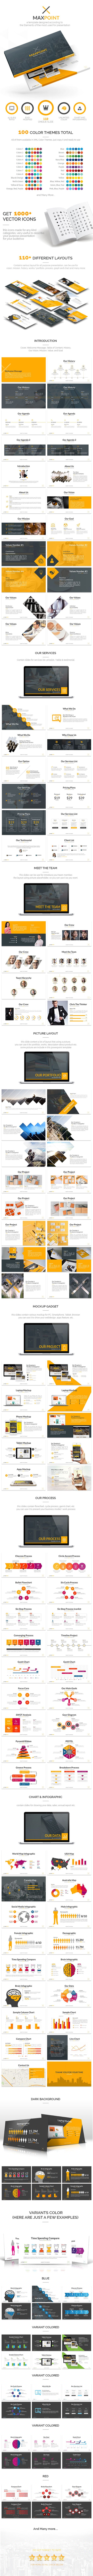 Maxpoint - Maximize your Powerpoint Presentation Template. Download here: http://graphicriver.net/item/maxpoint-maximize-your-powerpoint-presentation/15532142?ref=ksioks